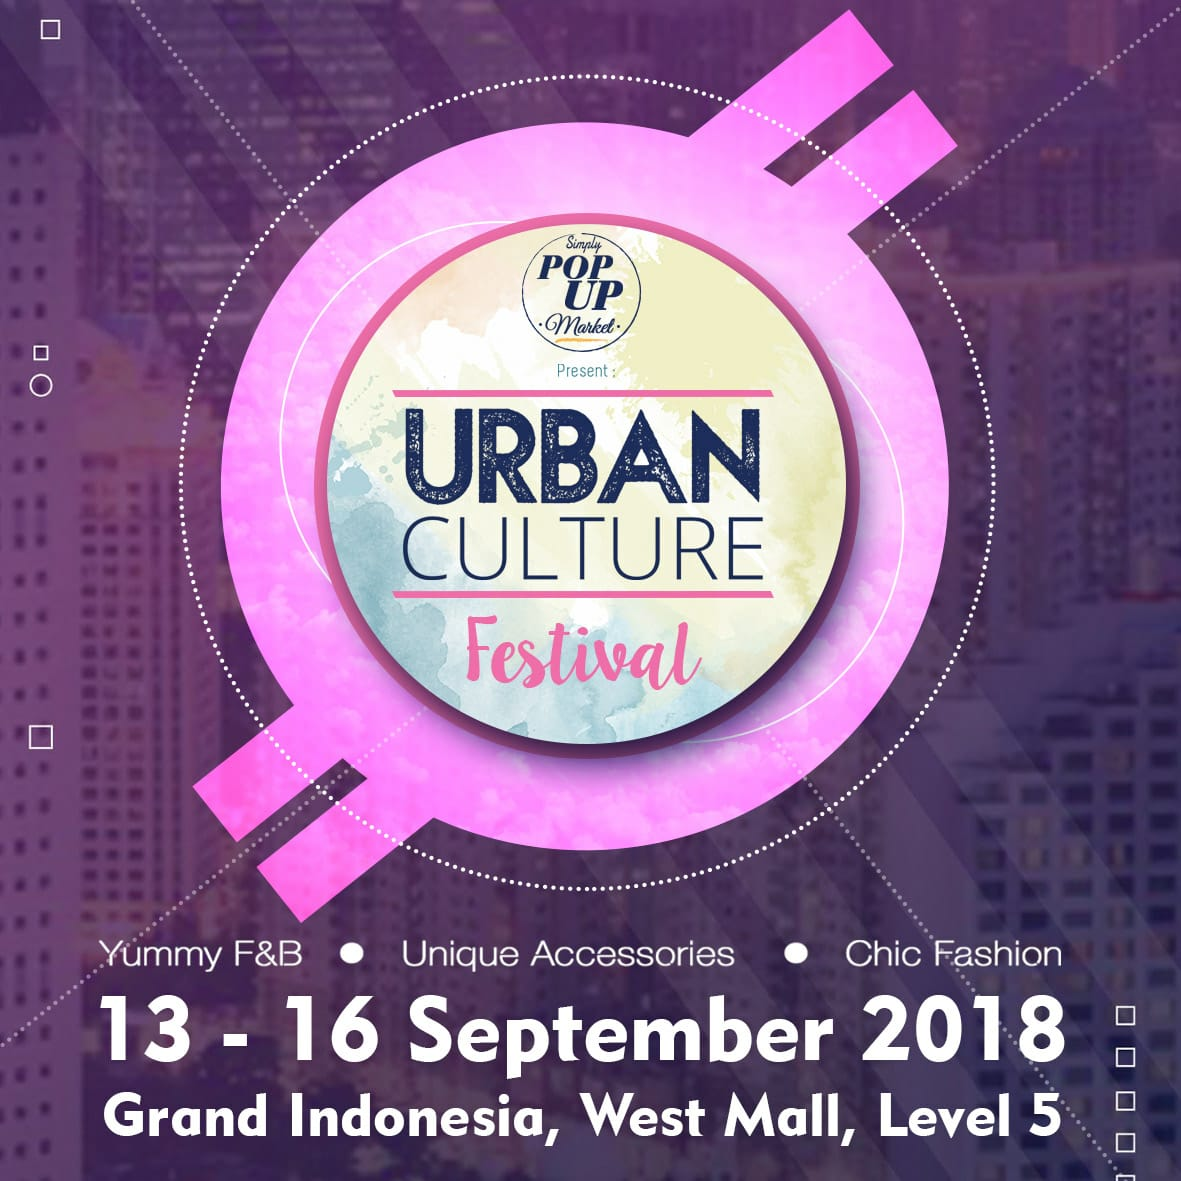 Simply Pop Up Market quot;Urban Culture Festivalquot;  Grand Indonesia, 1316 September 2018  HaiEvent.com